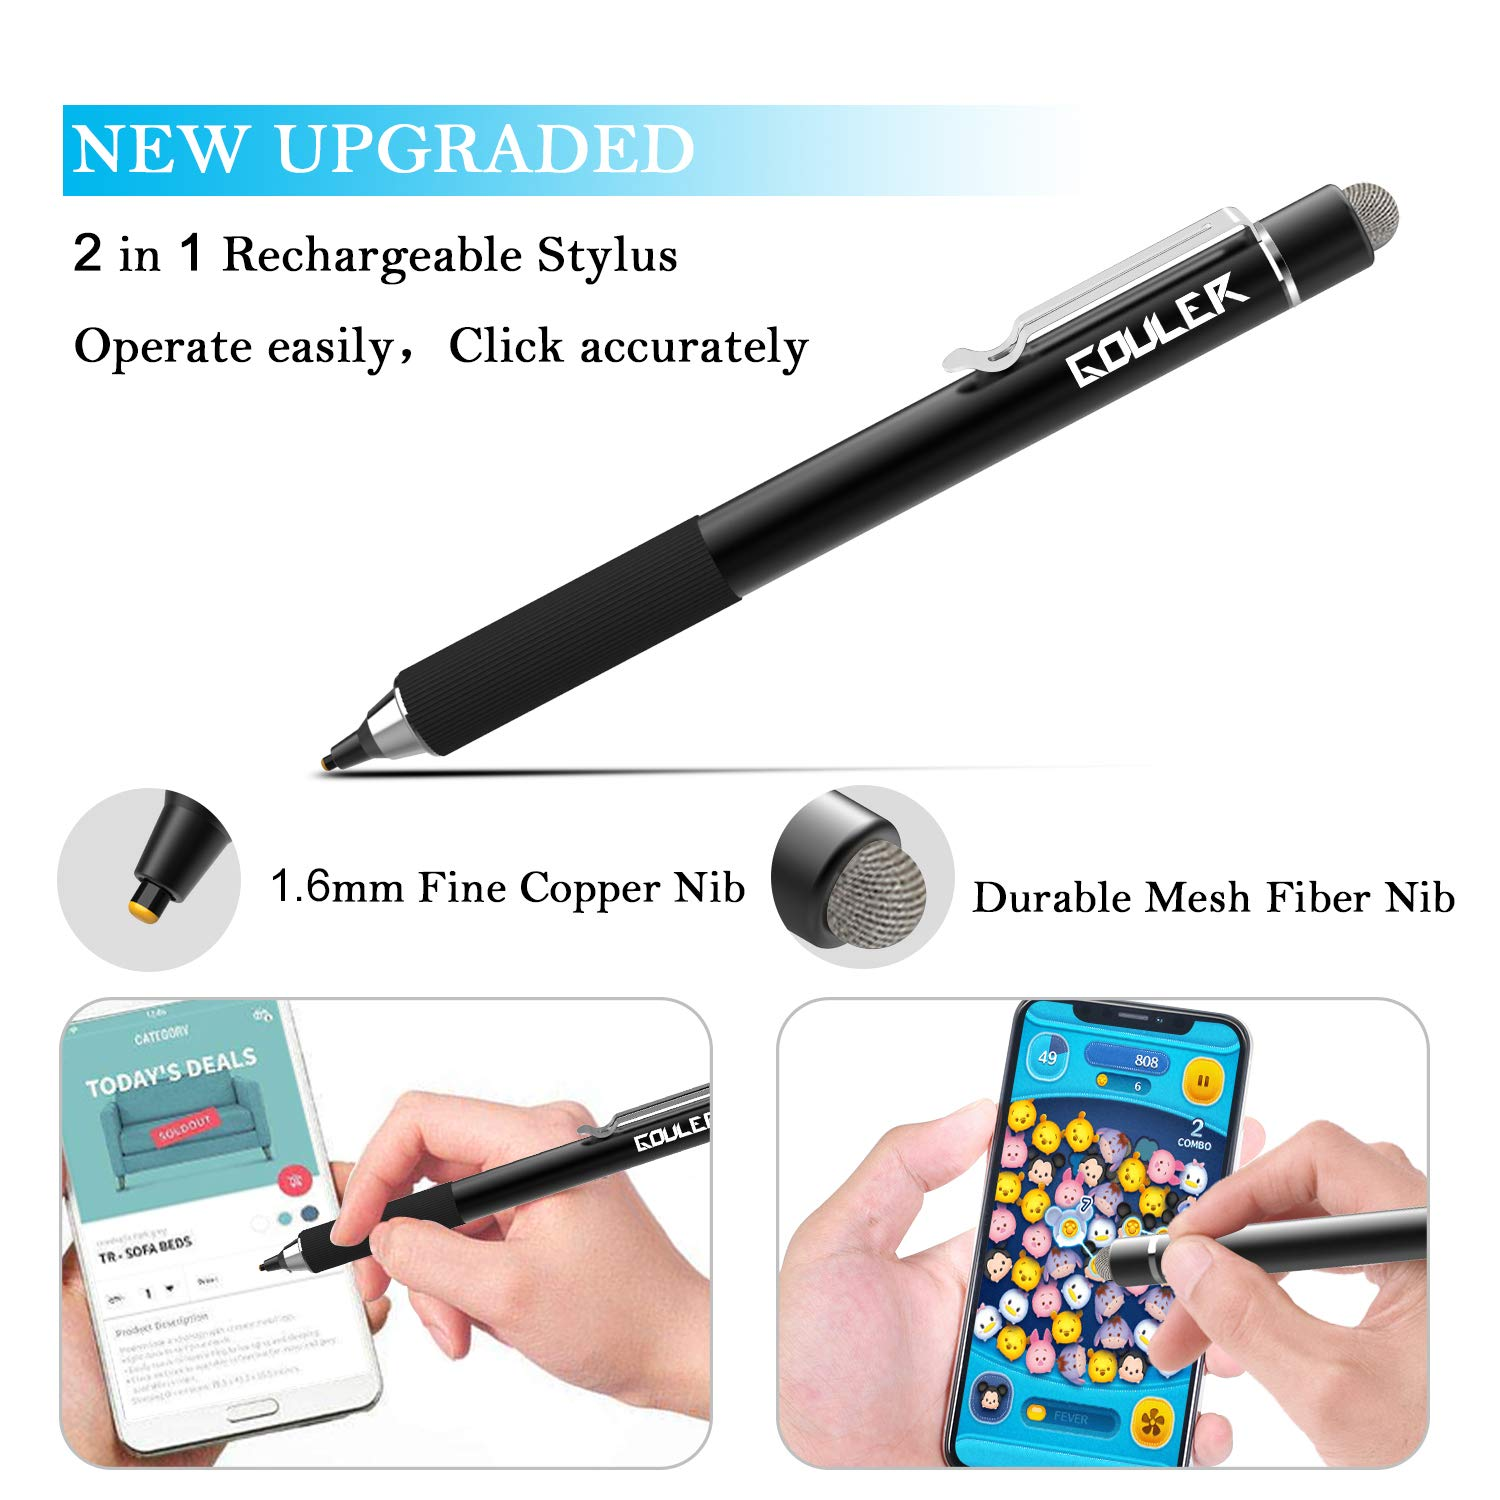 Gouler High-precision Stylus Pen with 2 in 1 Copper & Mesh Fine Tip Rechargeable Capacitive Digital Pen for iPad, iPhone, Android and Most of Touch Screen Devices by Gouler (Image #2)